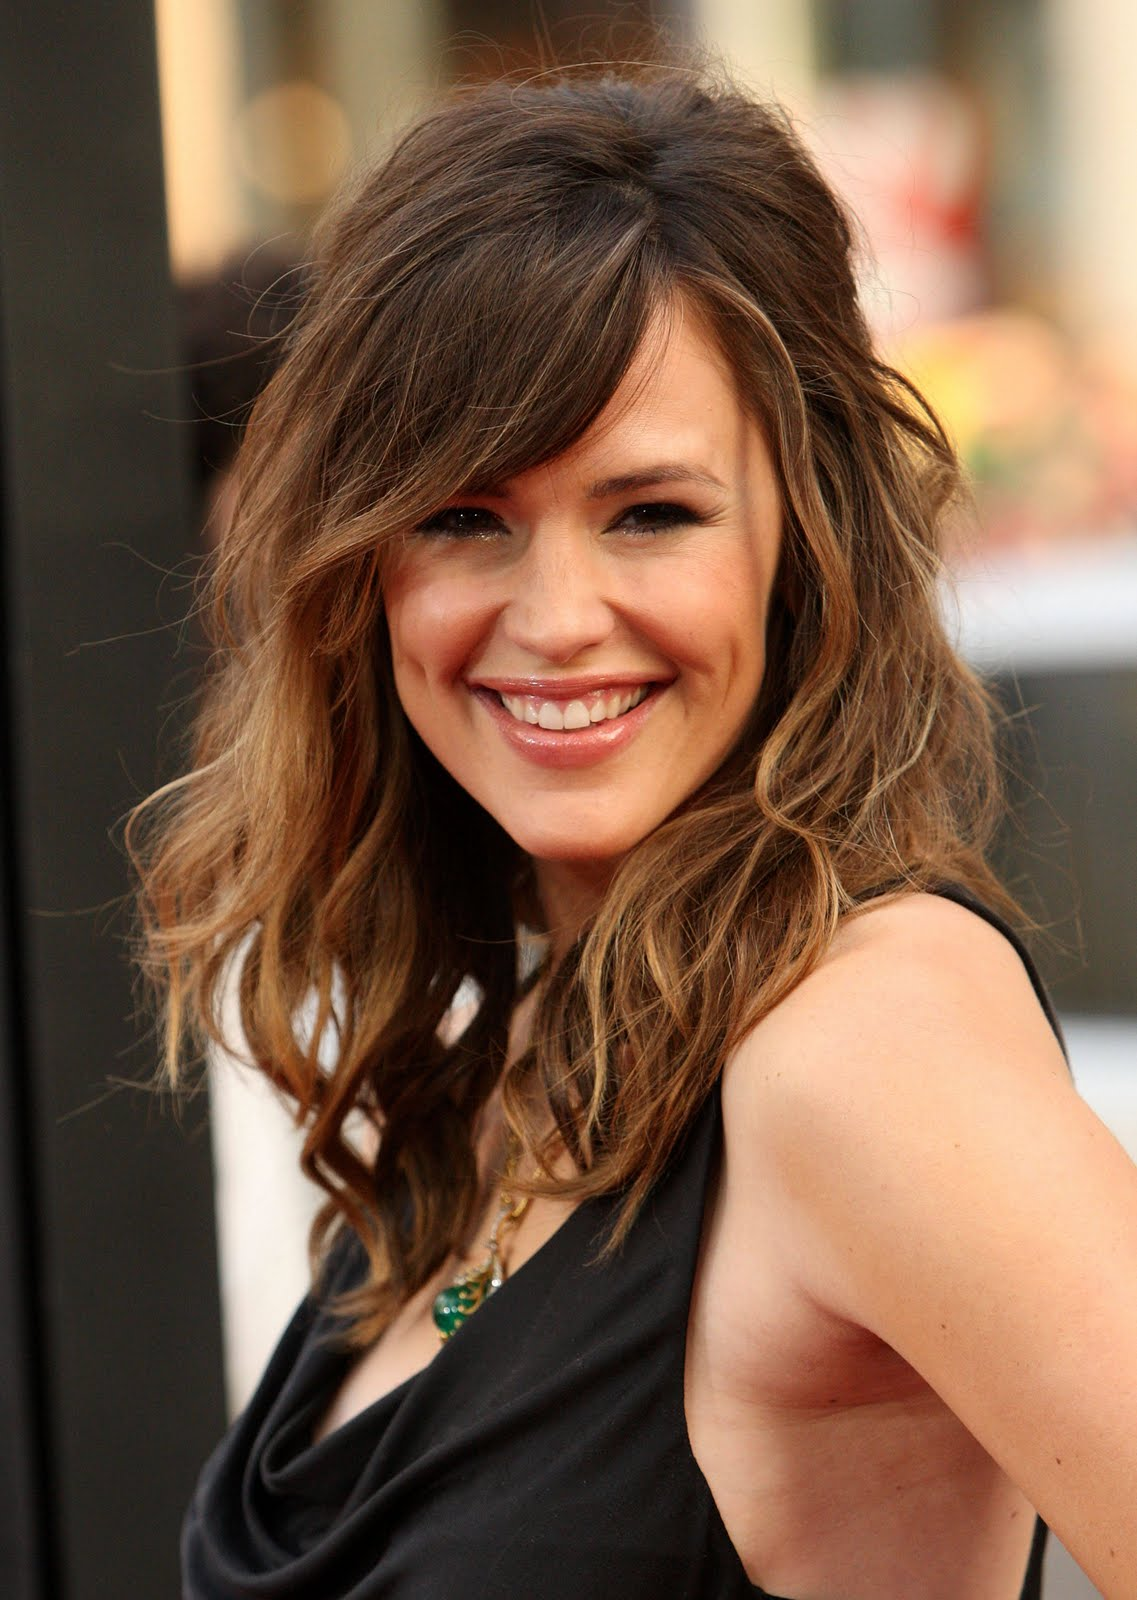 6 different long layered hairstyles with bangs 2015, include